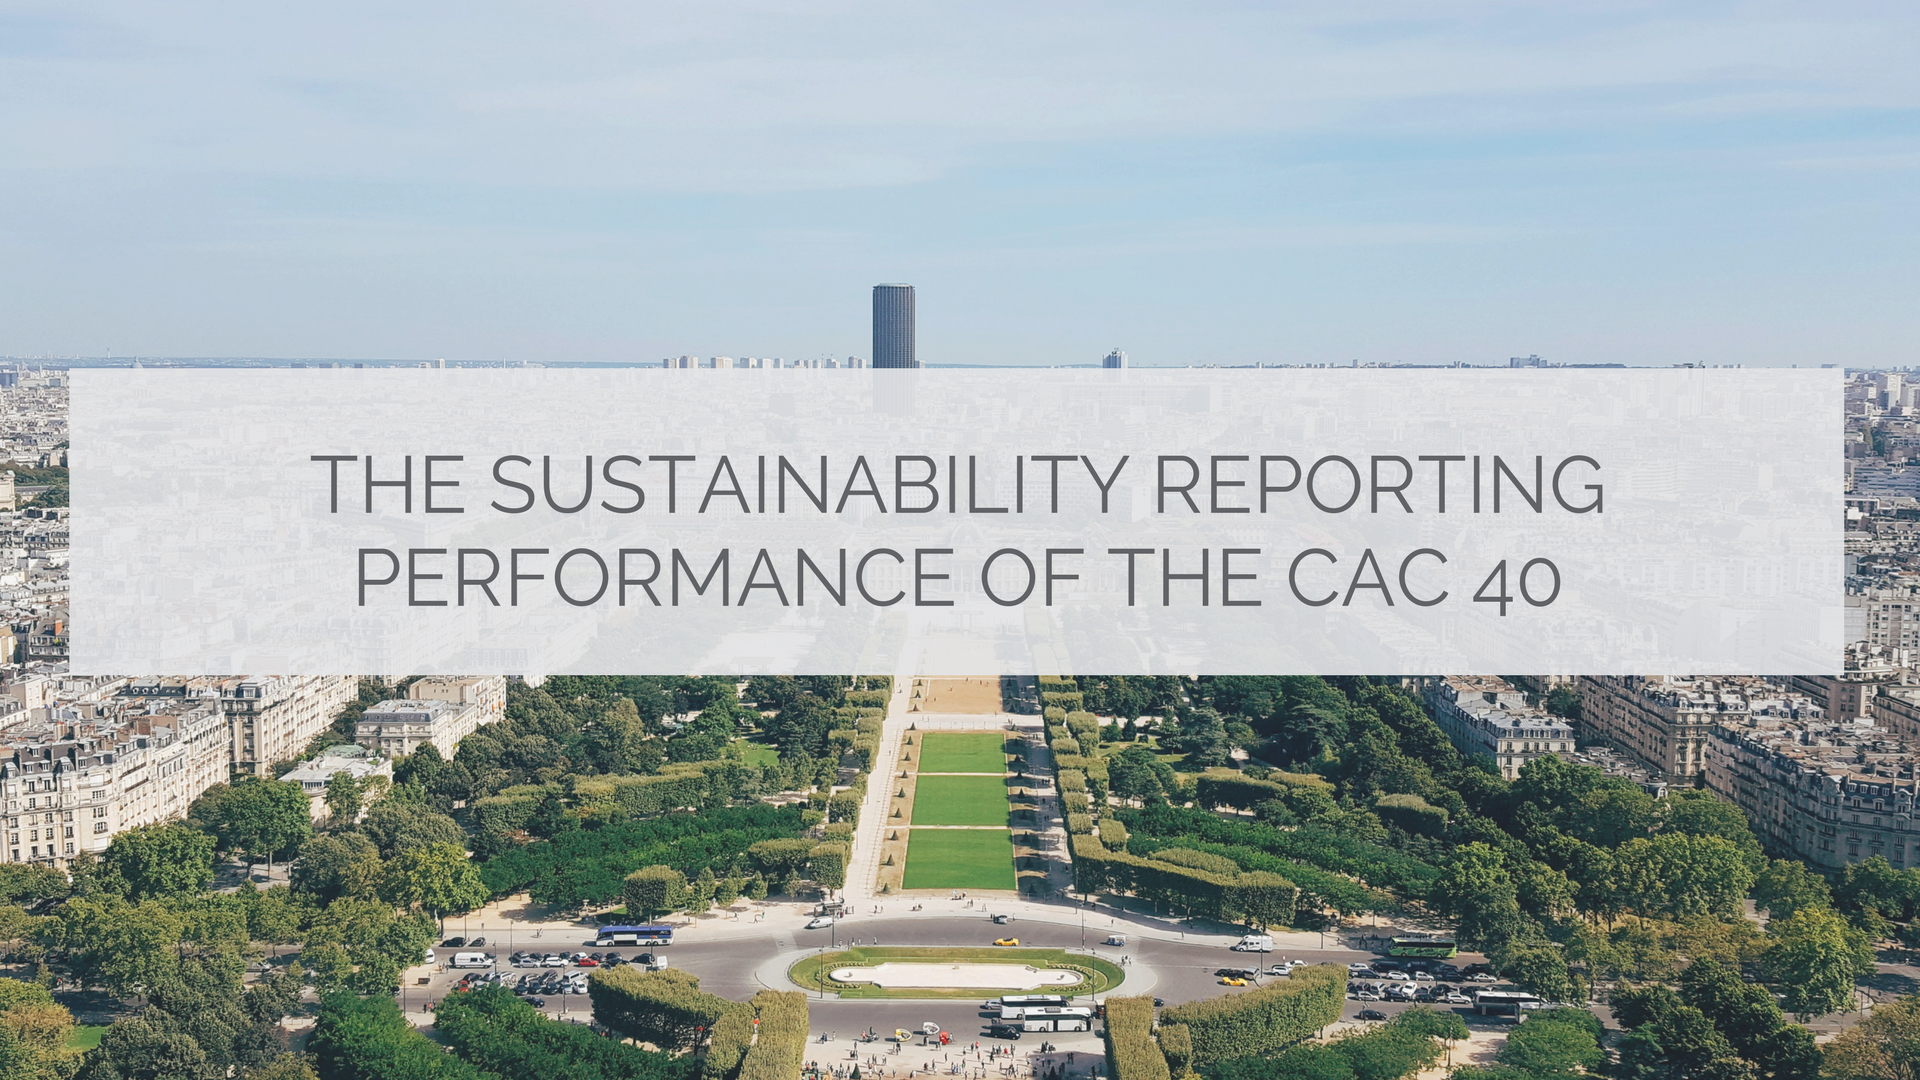 Sustainable reporting - CAC 40 - image.png